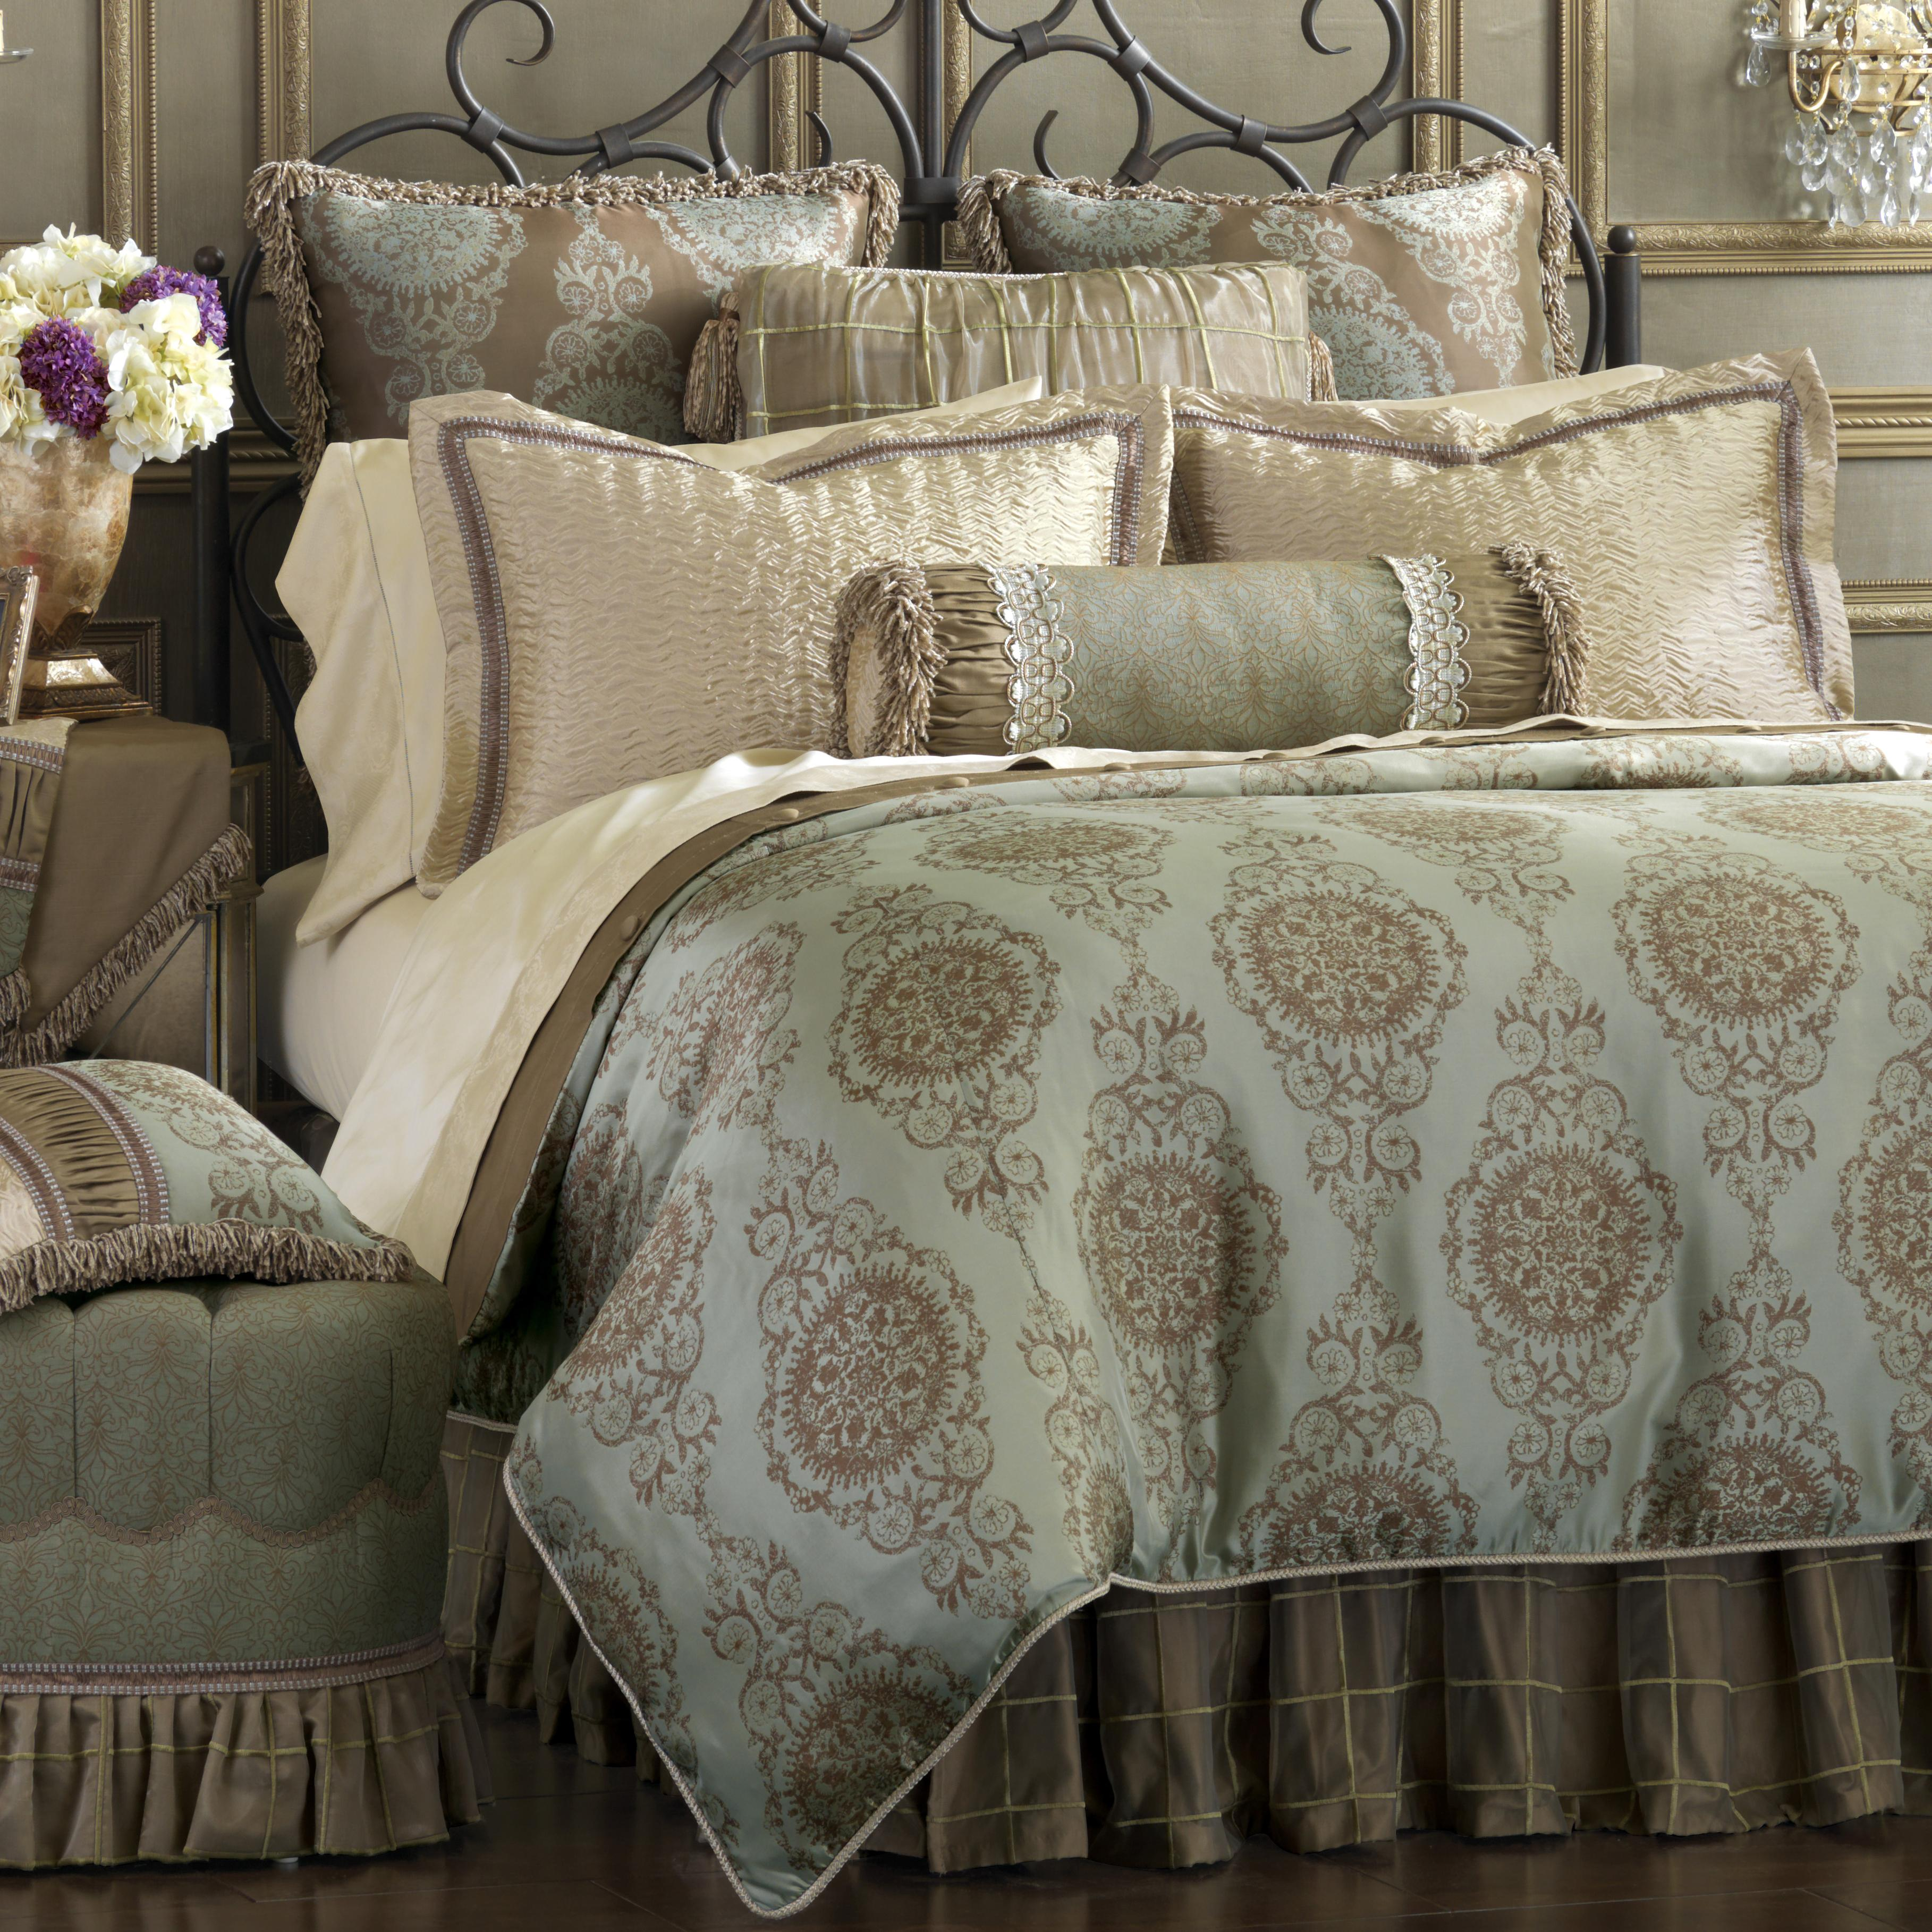 Marbella King Bedset by Eastern Accents at Alison Craig Home Furnishings